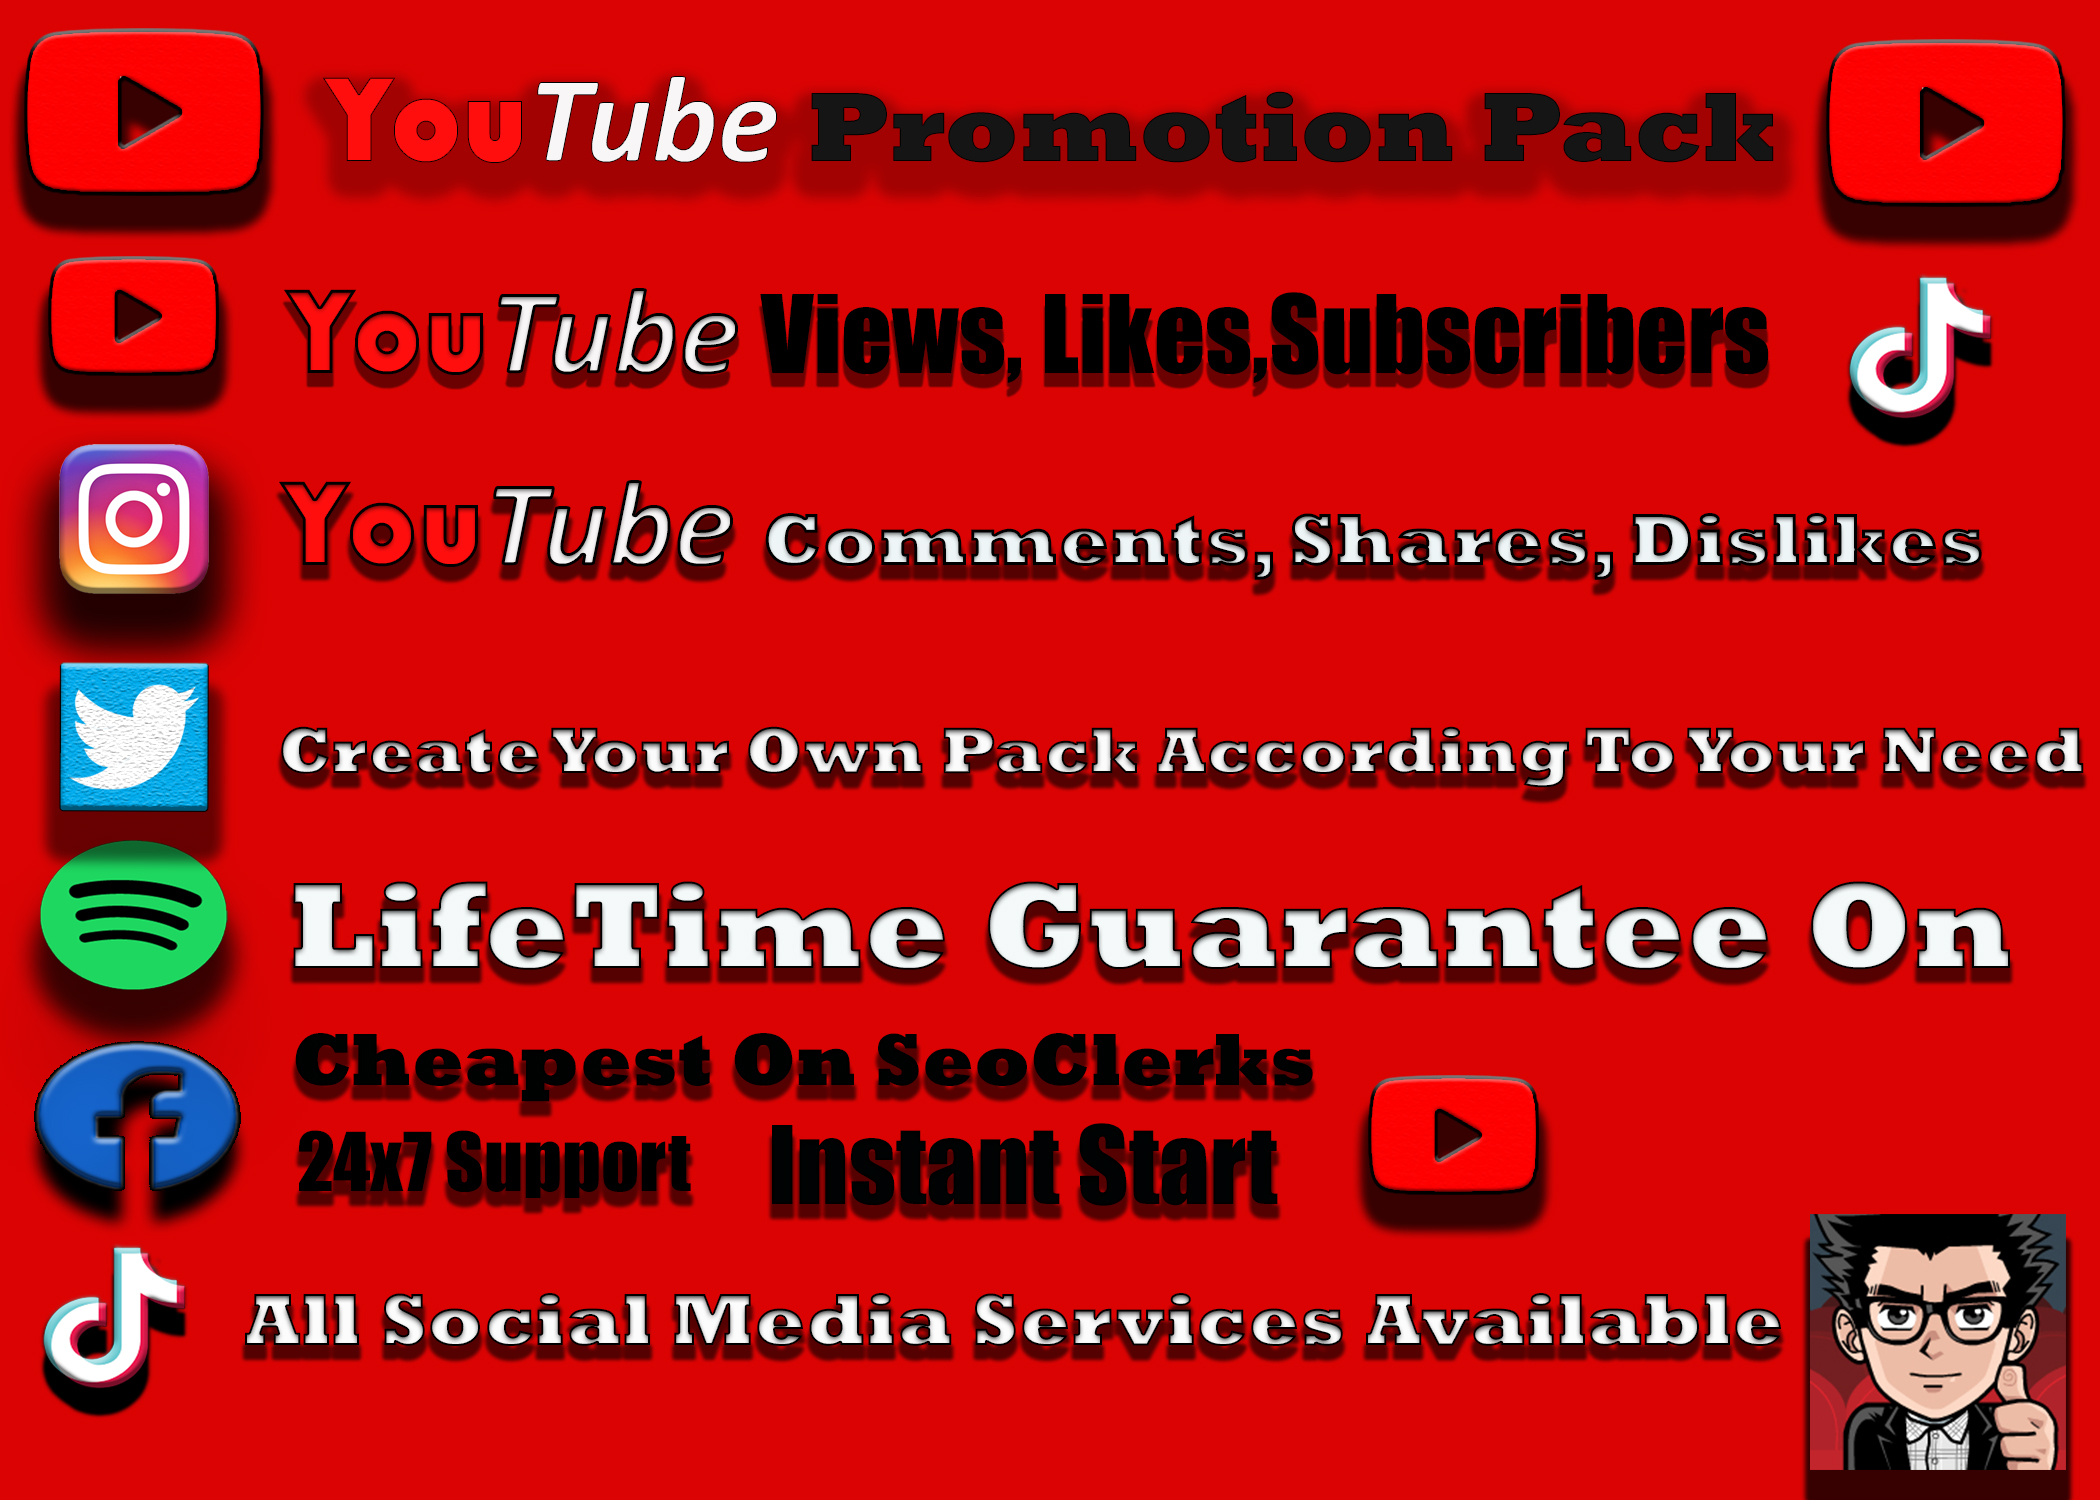 Organic YouTube Video Promotions. 1k Instant Start NON DROP Lifetime Guarantee